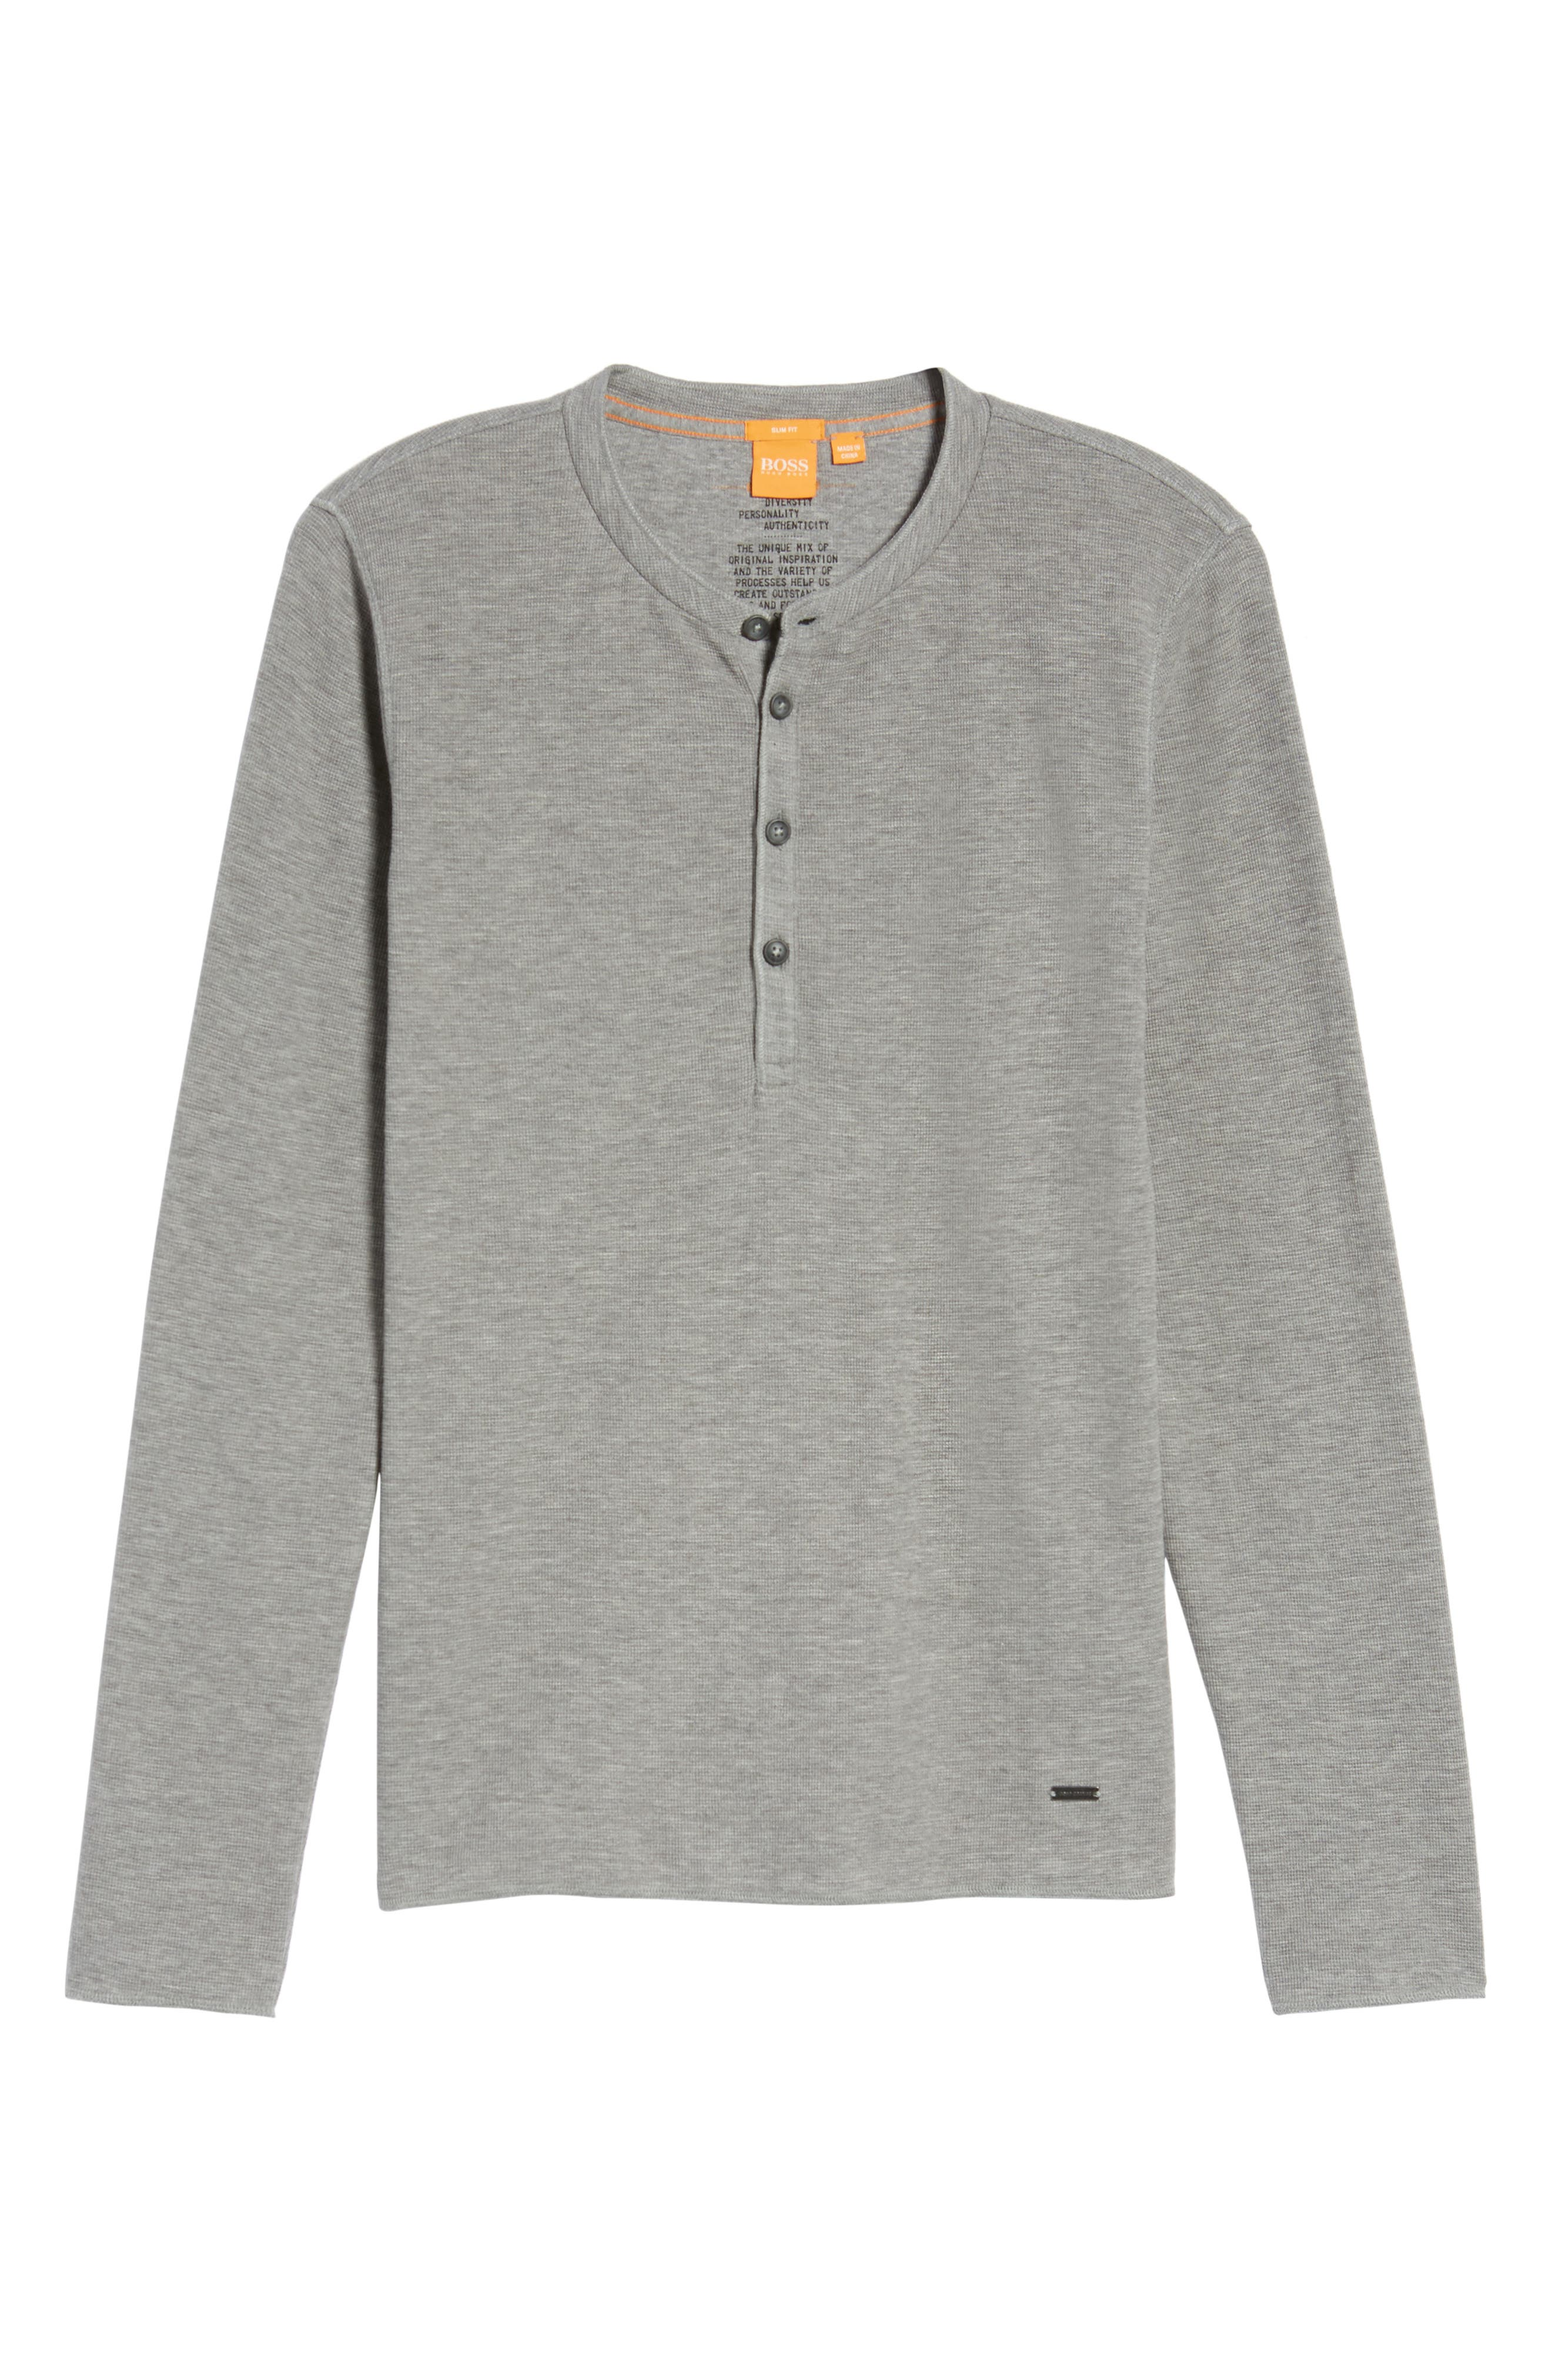 Topsider Thermal Henley,                             Alternate thumbnail 7, color,                             Light Pastel/ Grey